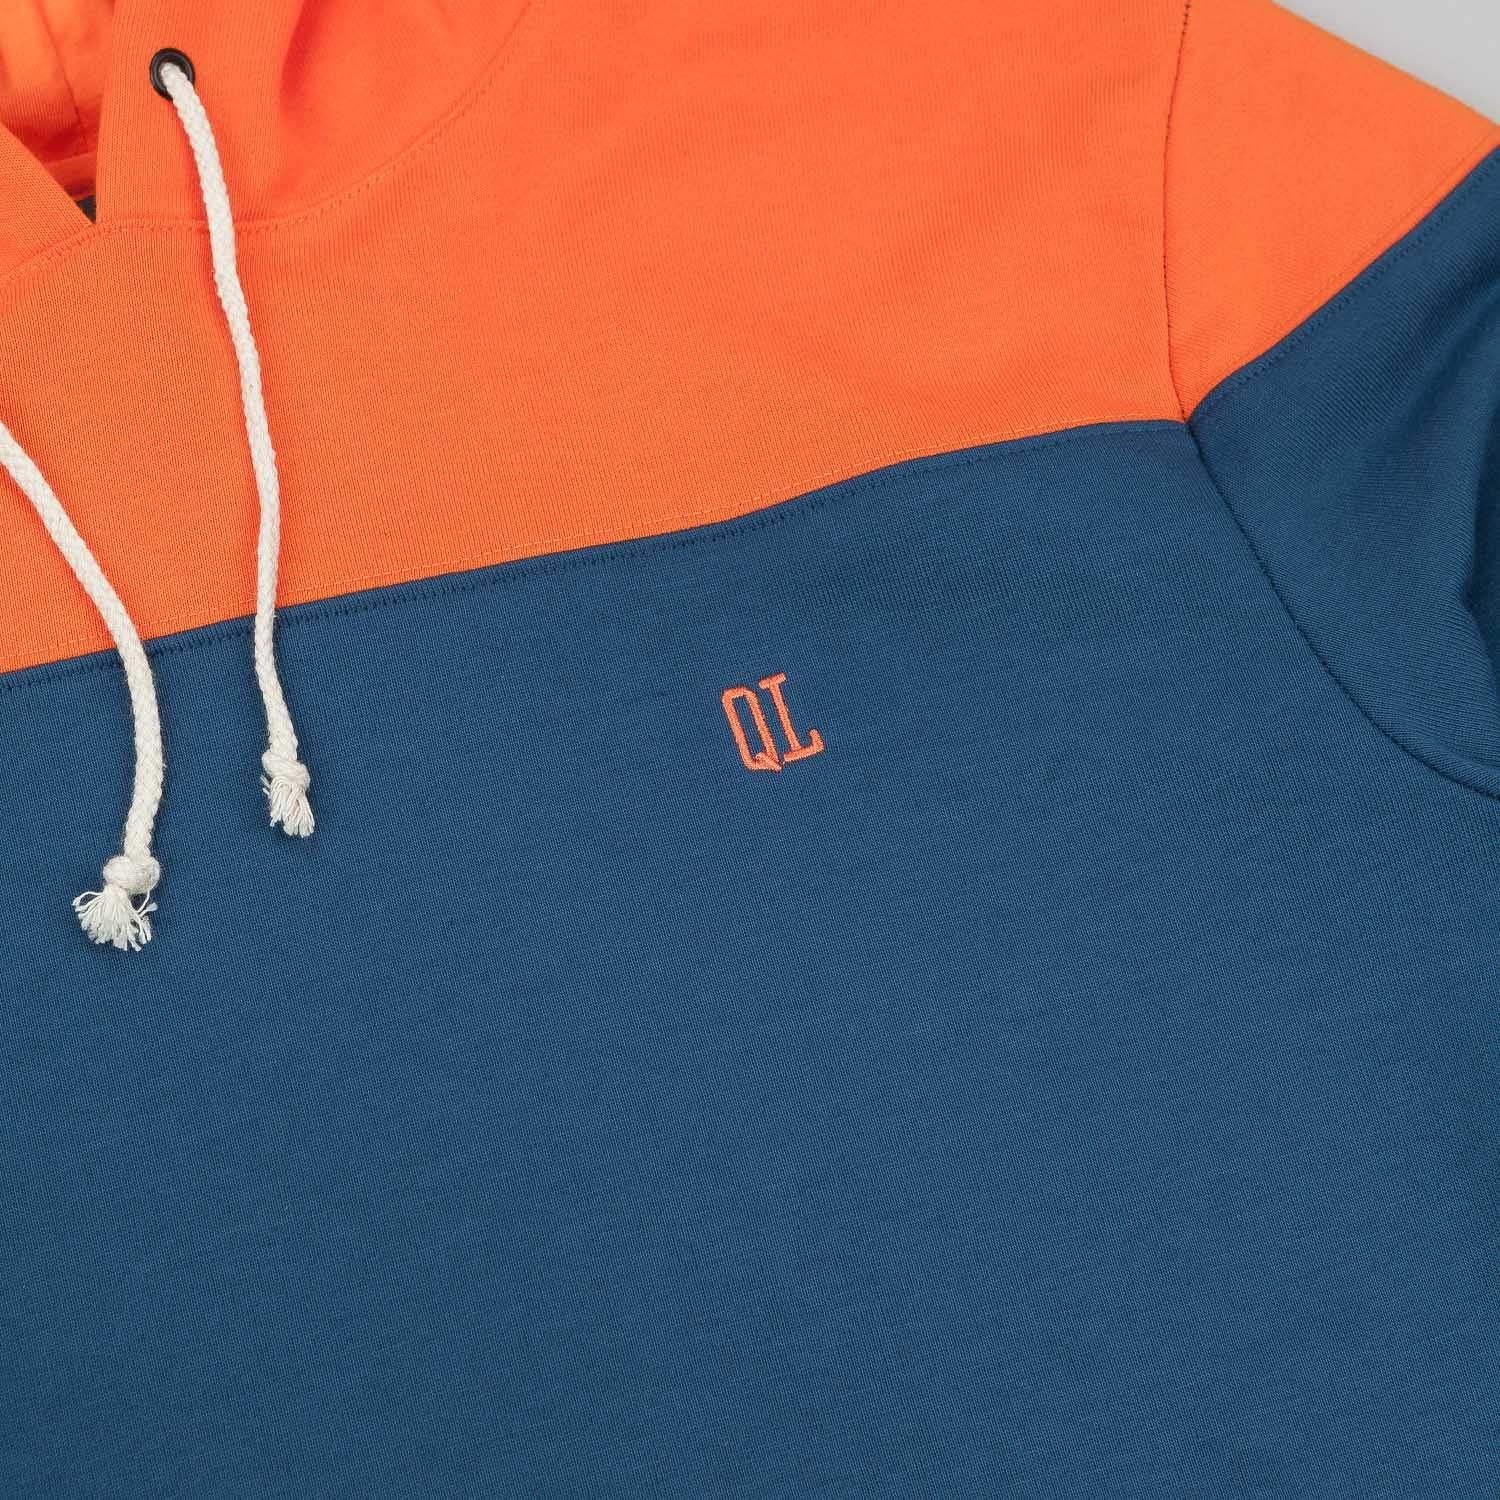 The Quiet Life Colour Block Hooded Sweatshirt - Navy / Orange